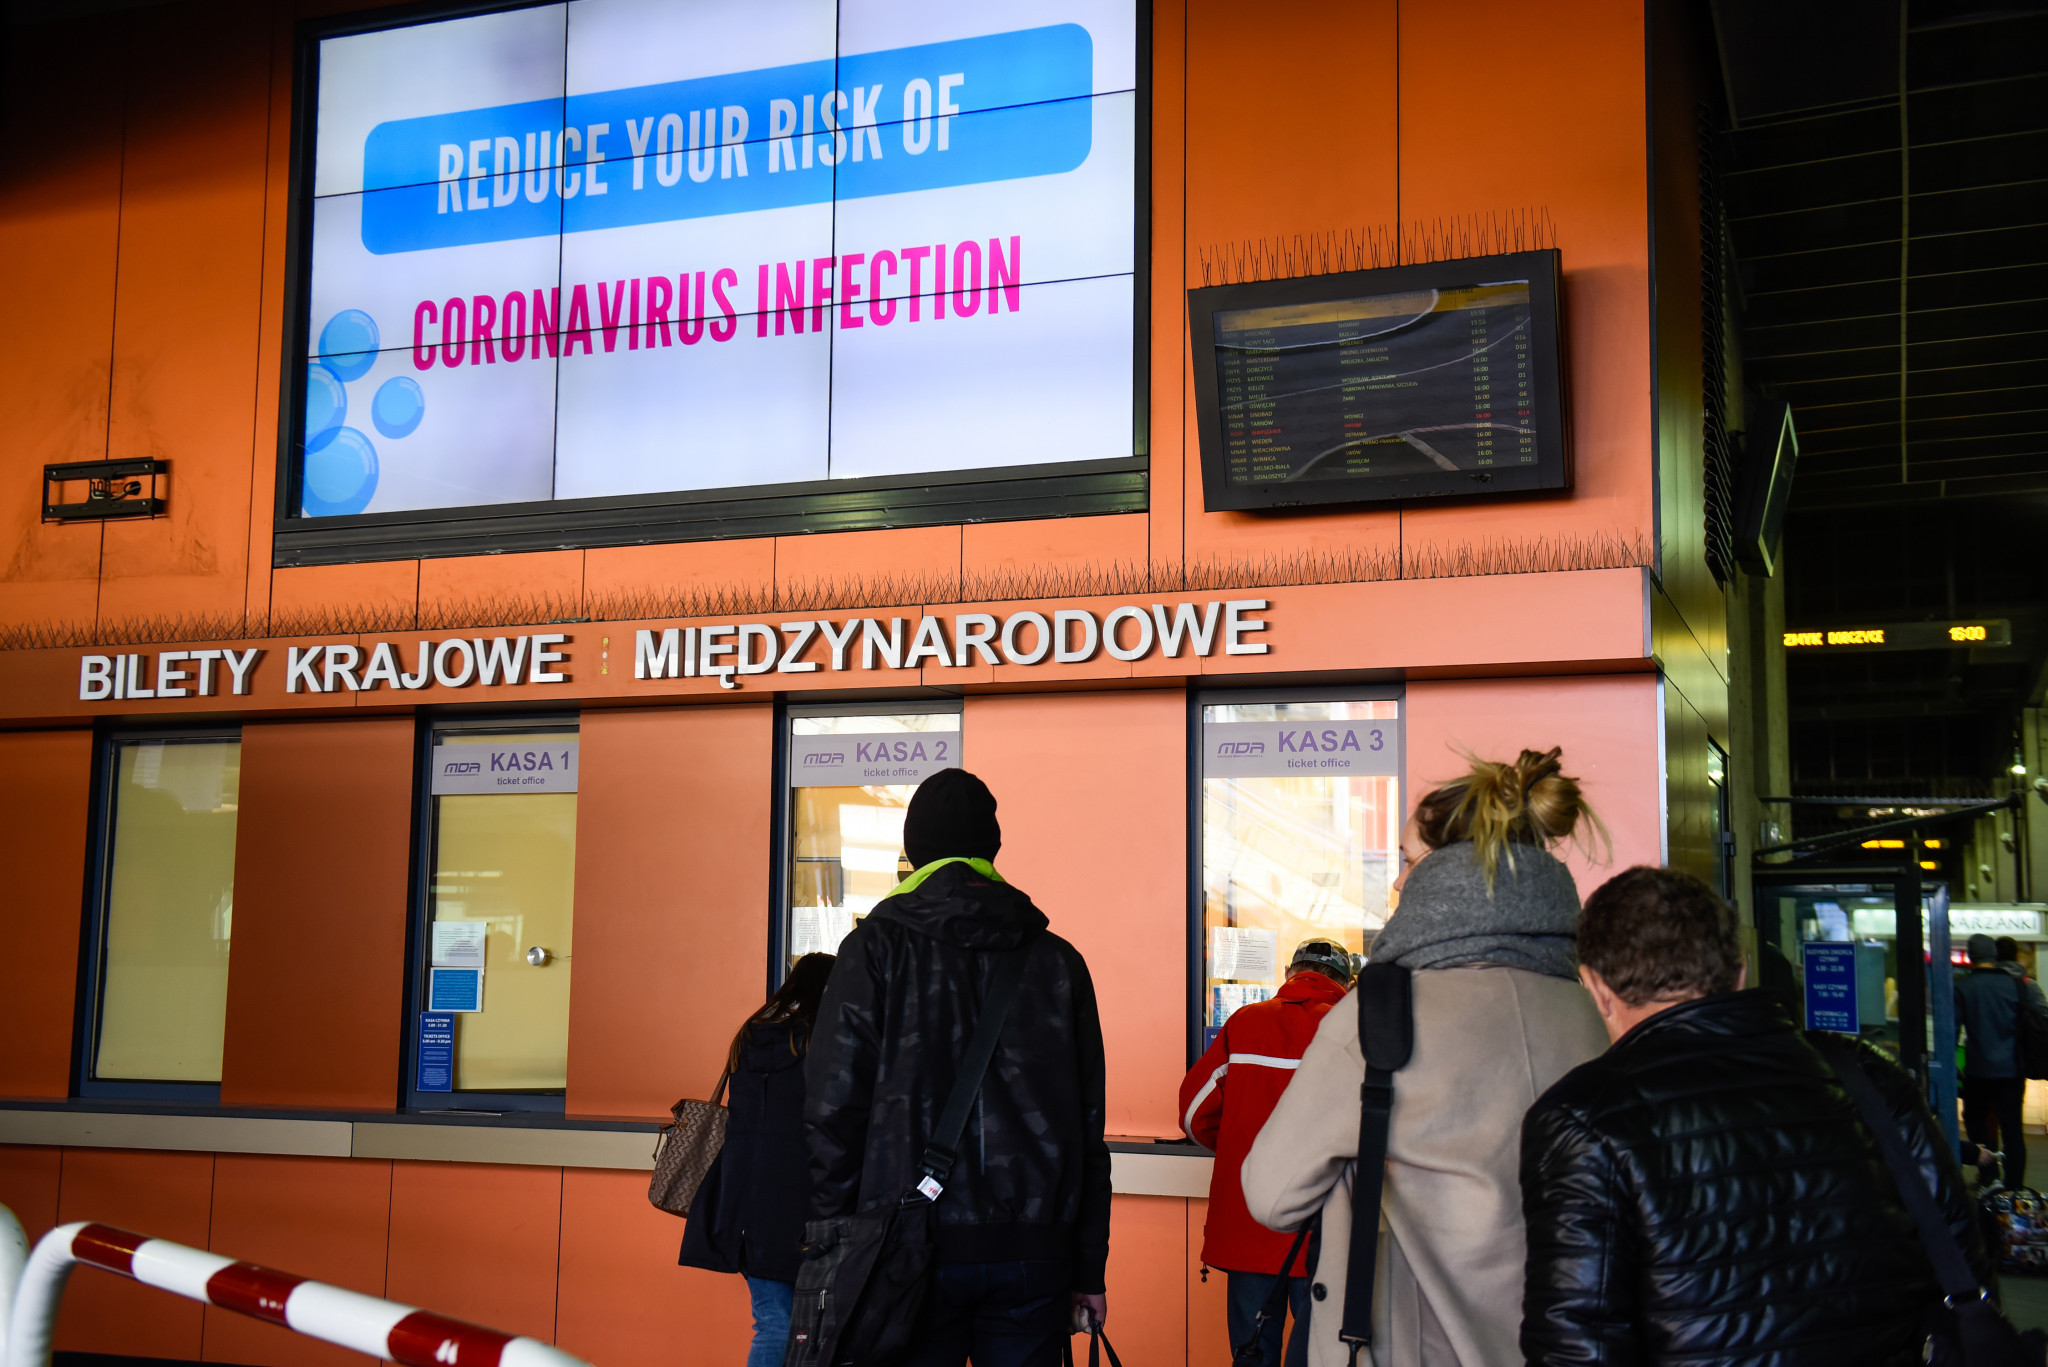 Measures have been put in place to stop the spread of coronavirus ©Getty Images